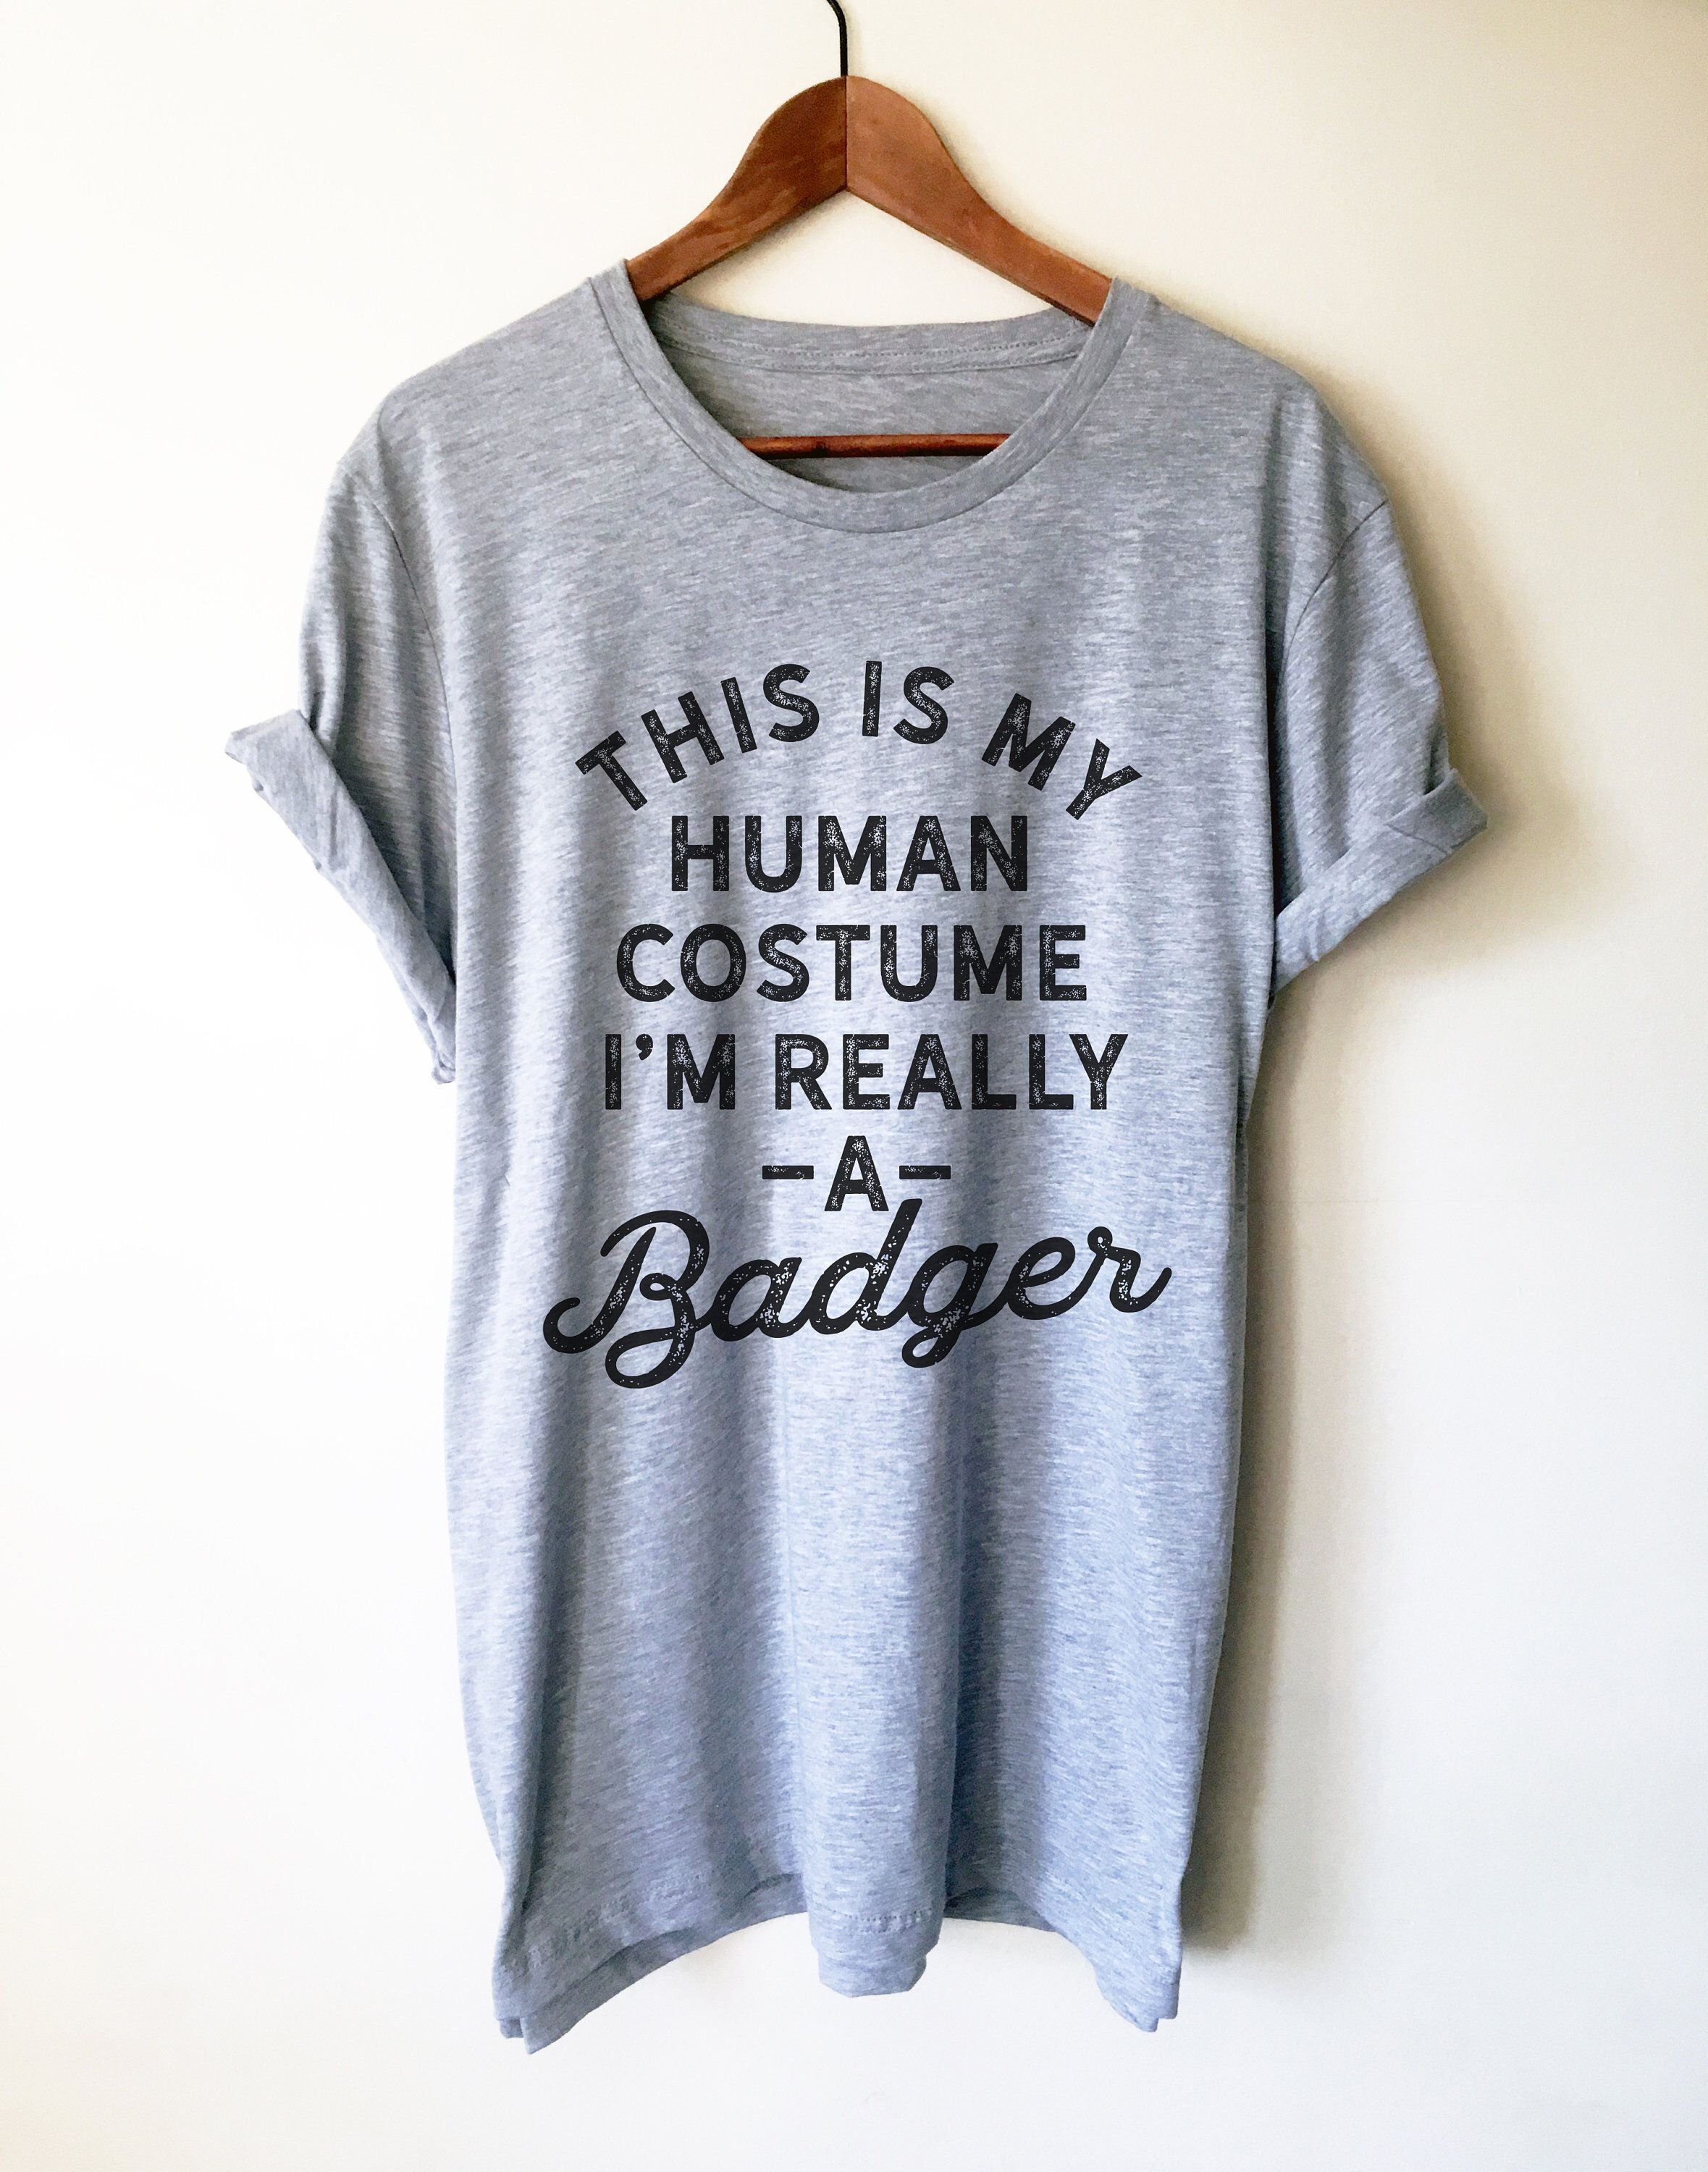 This Is My Human Costume I'm Really A Badger Unisex Shirt